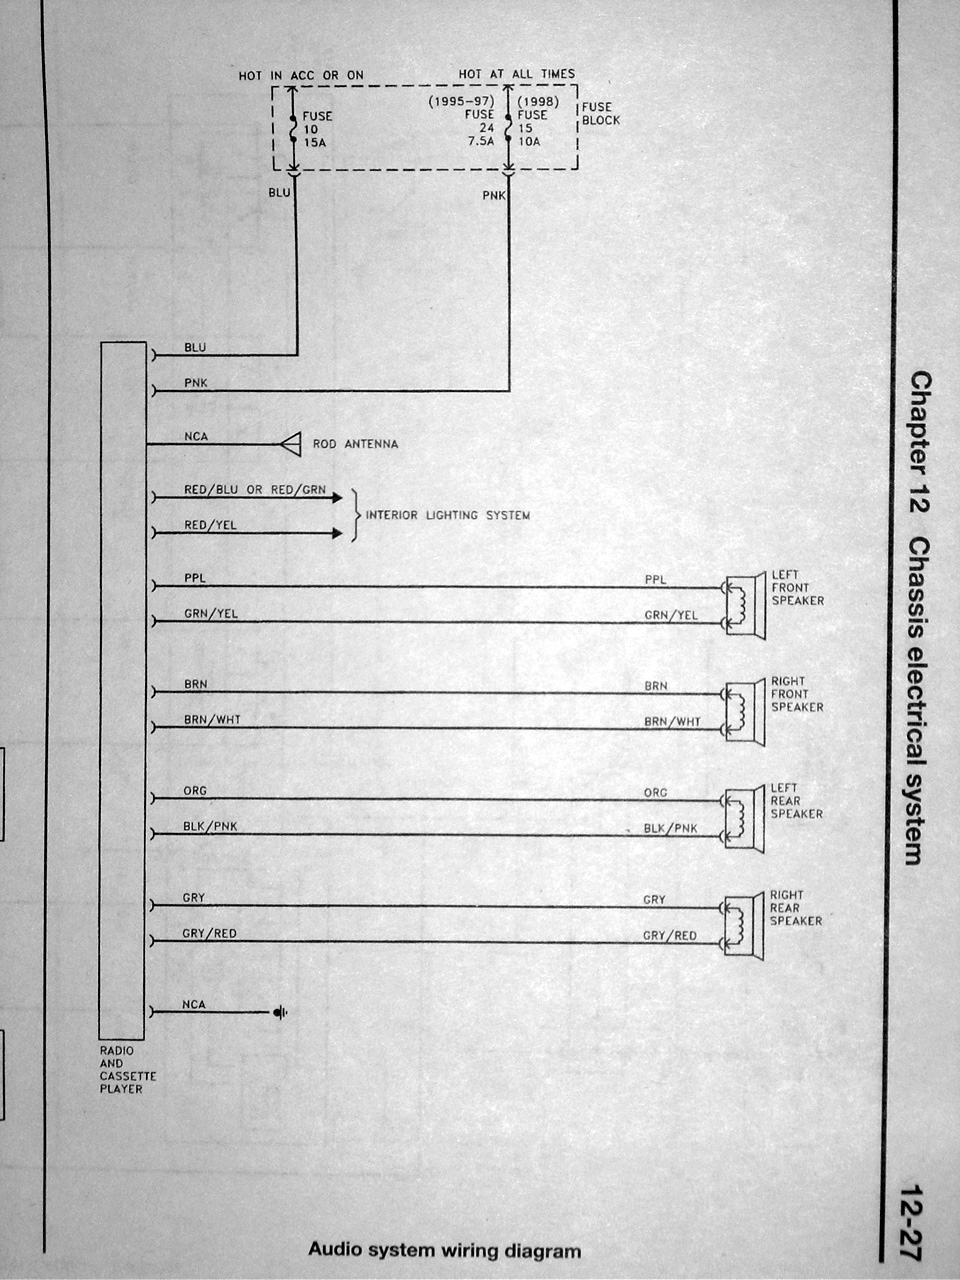 DSC01849 wiring diagram thread *useful info* nissan forum 1998 nissan sentra wiring diagram at soozxer.org